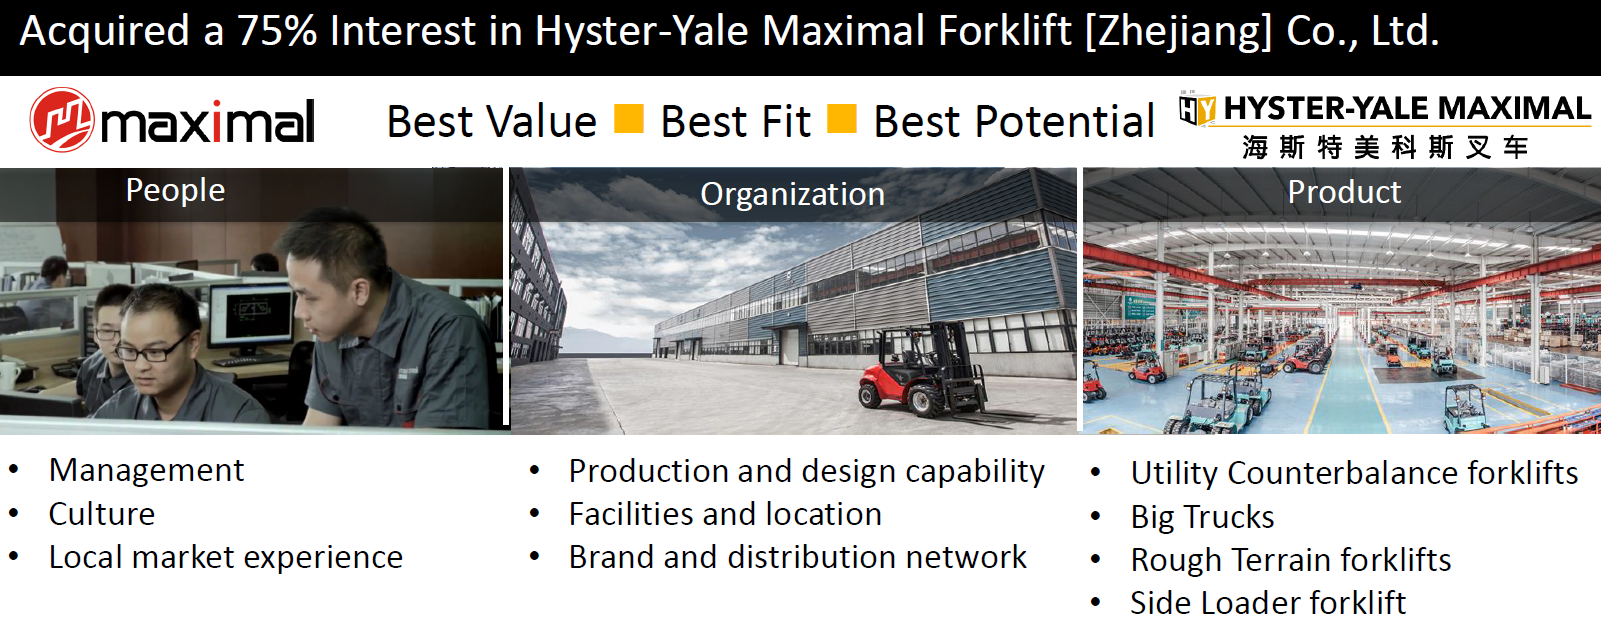 Hyster-Yale: Is The Worst Behind Us? - Hyster-Yale Materials